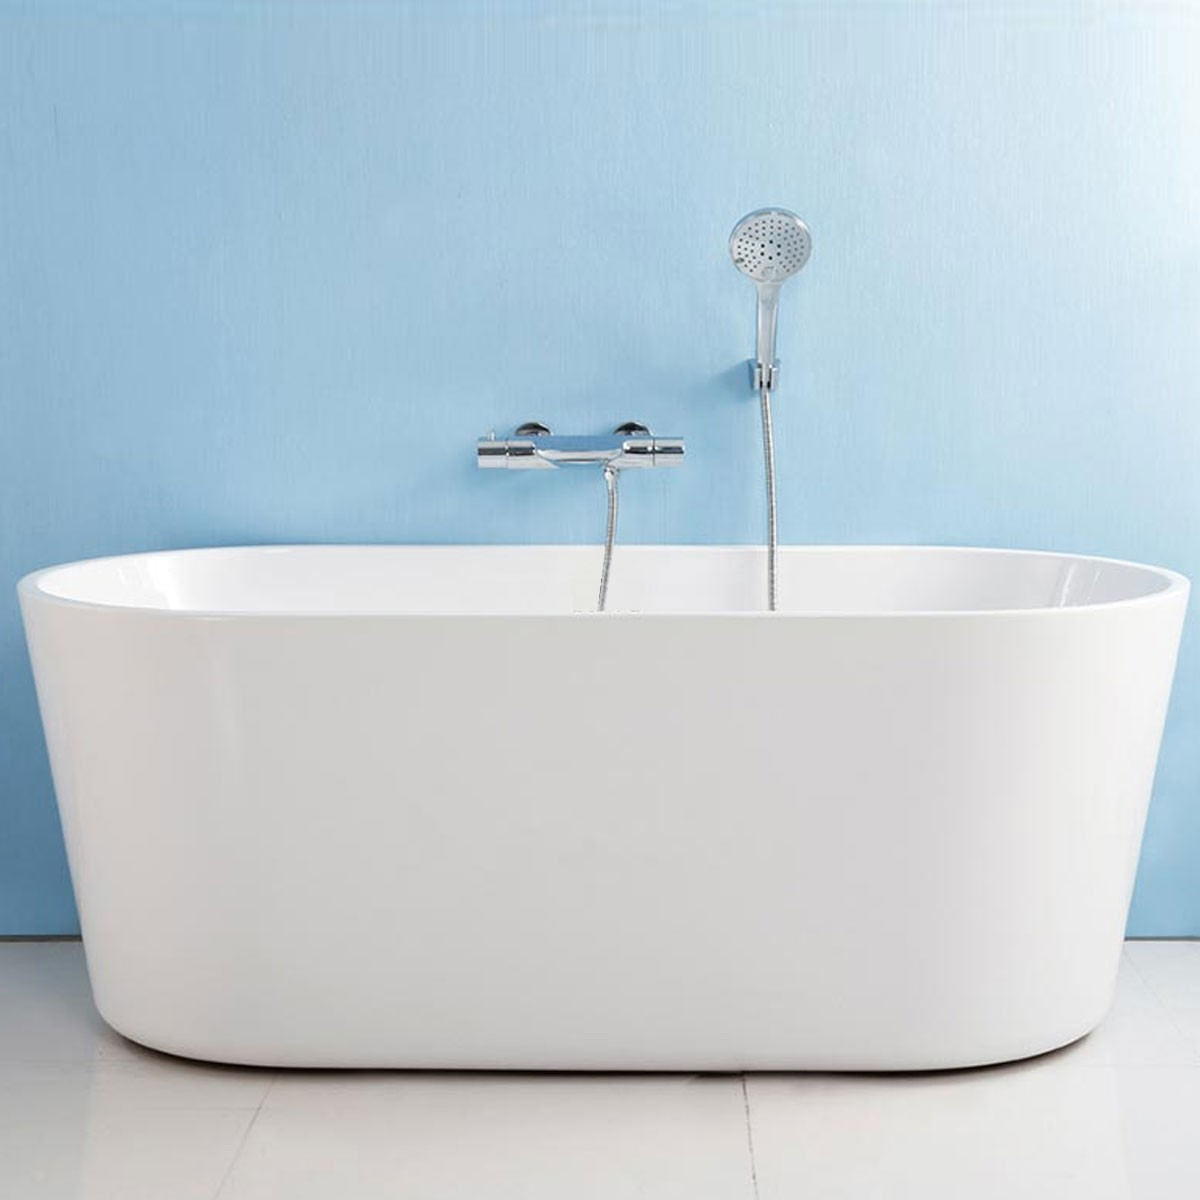 62 In White Acrylic Seamless Freestanding Bathtub (DK-AT-96675)